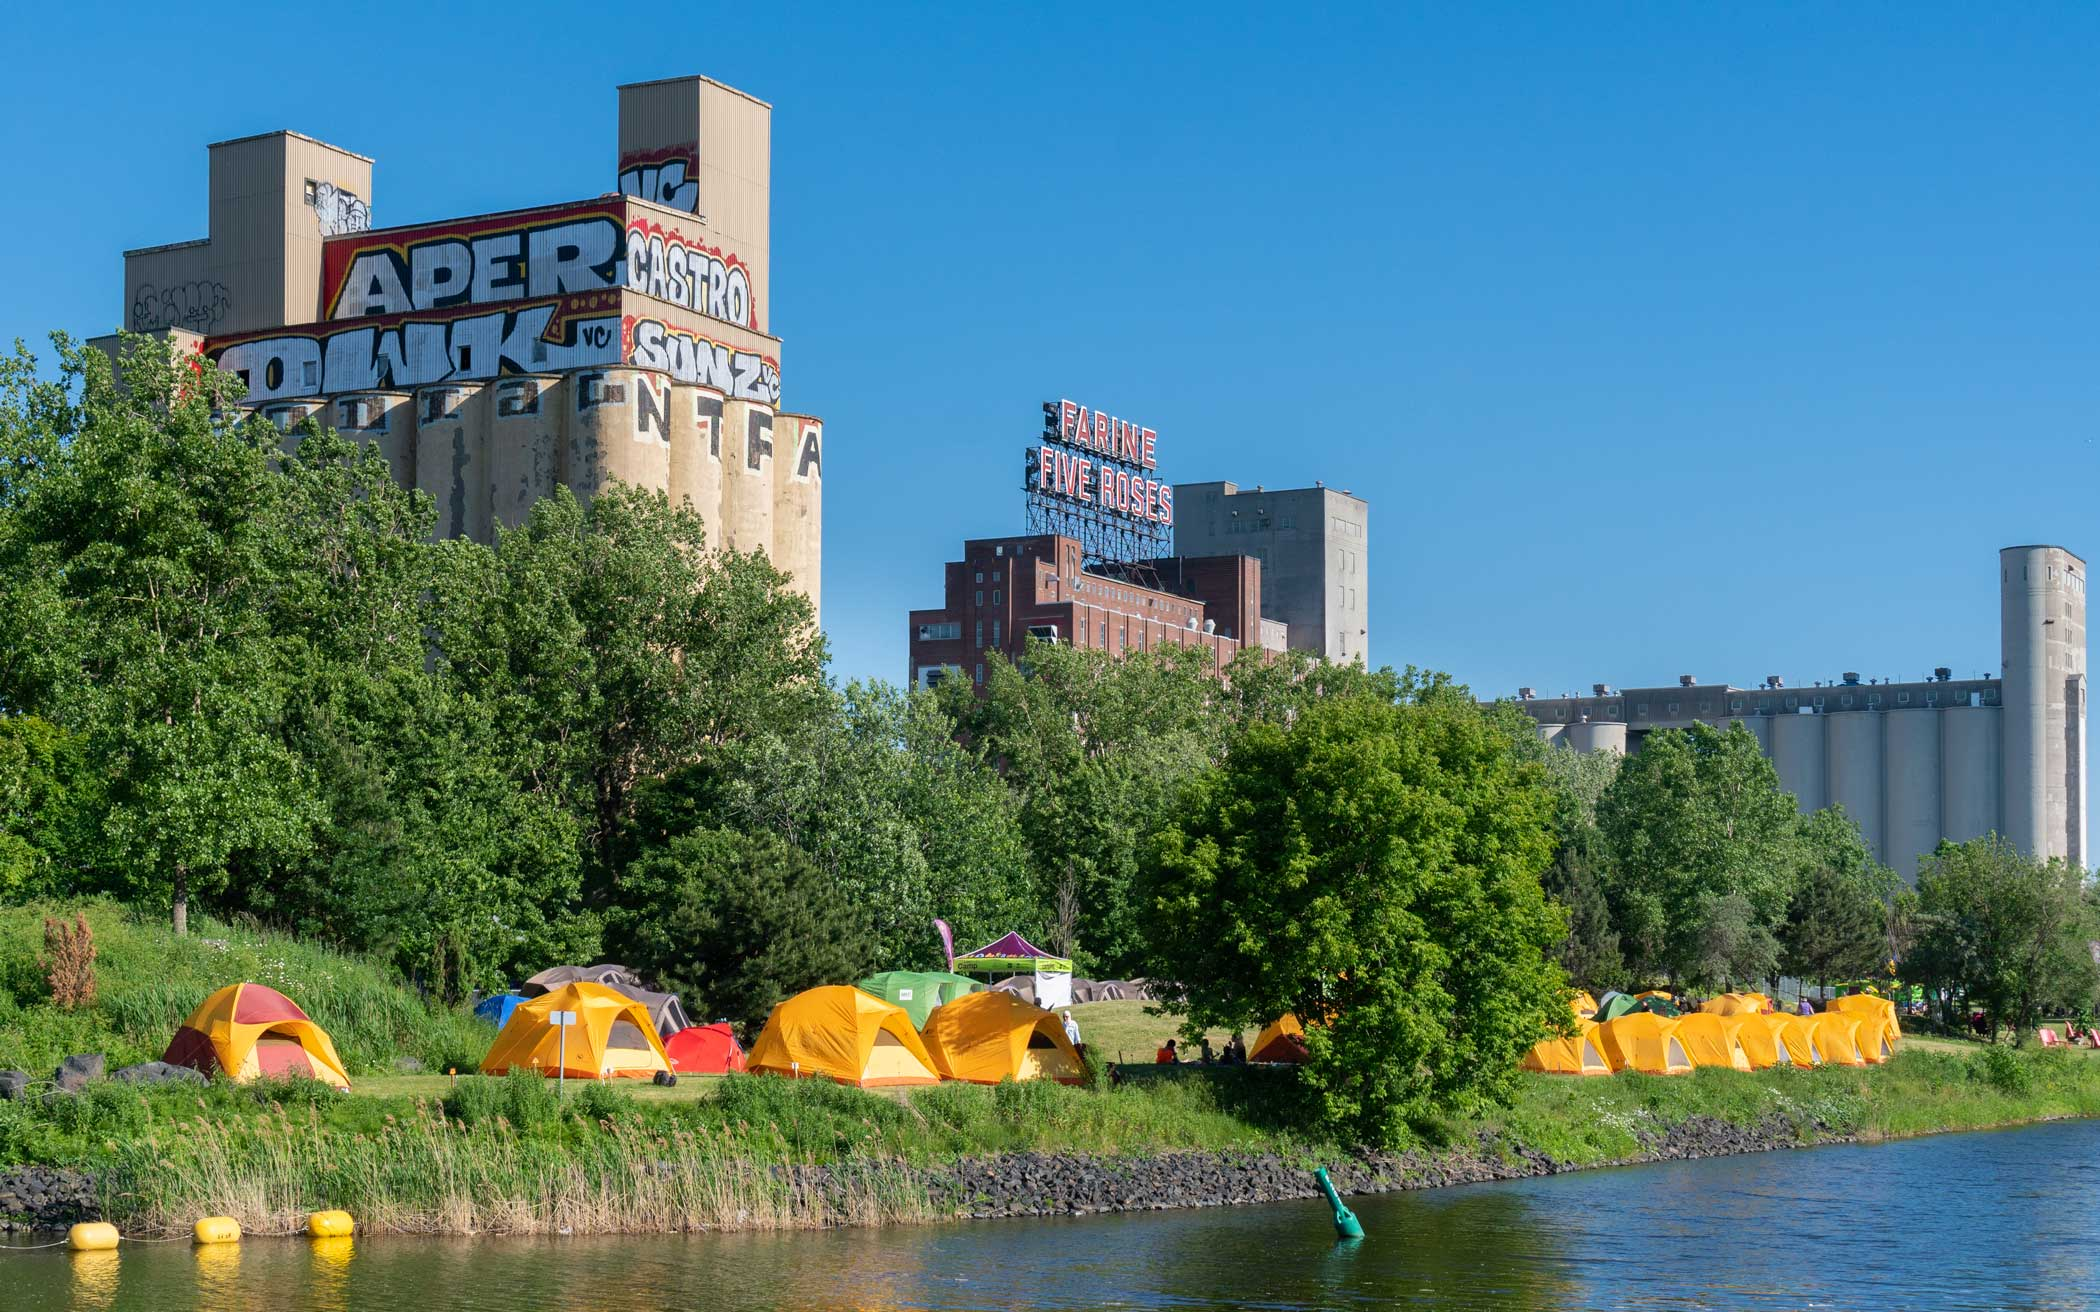 Tents line the park in front of Farine Five Roses on Lachine Canal.